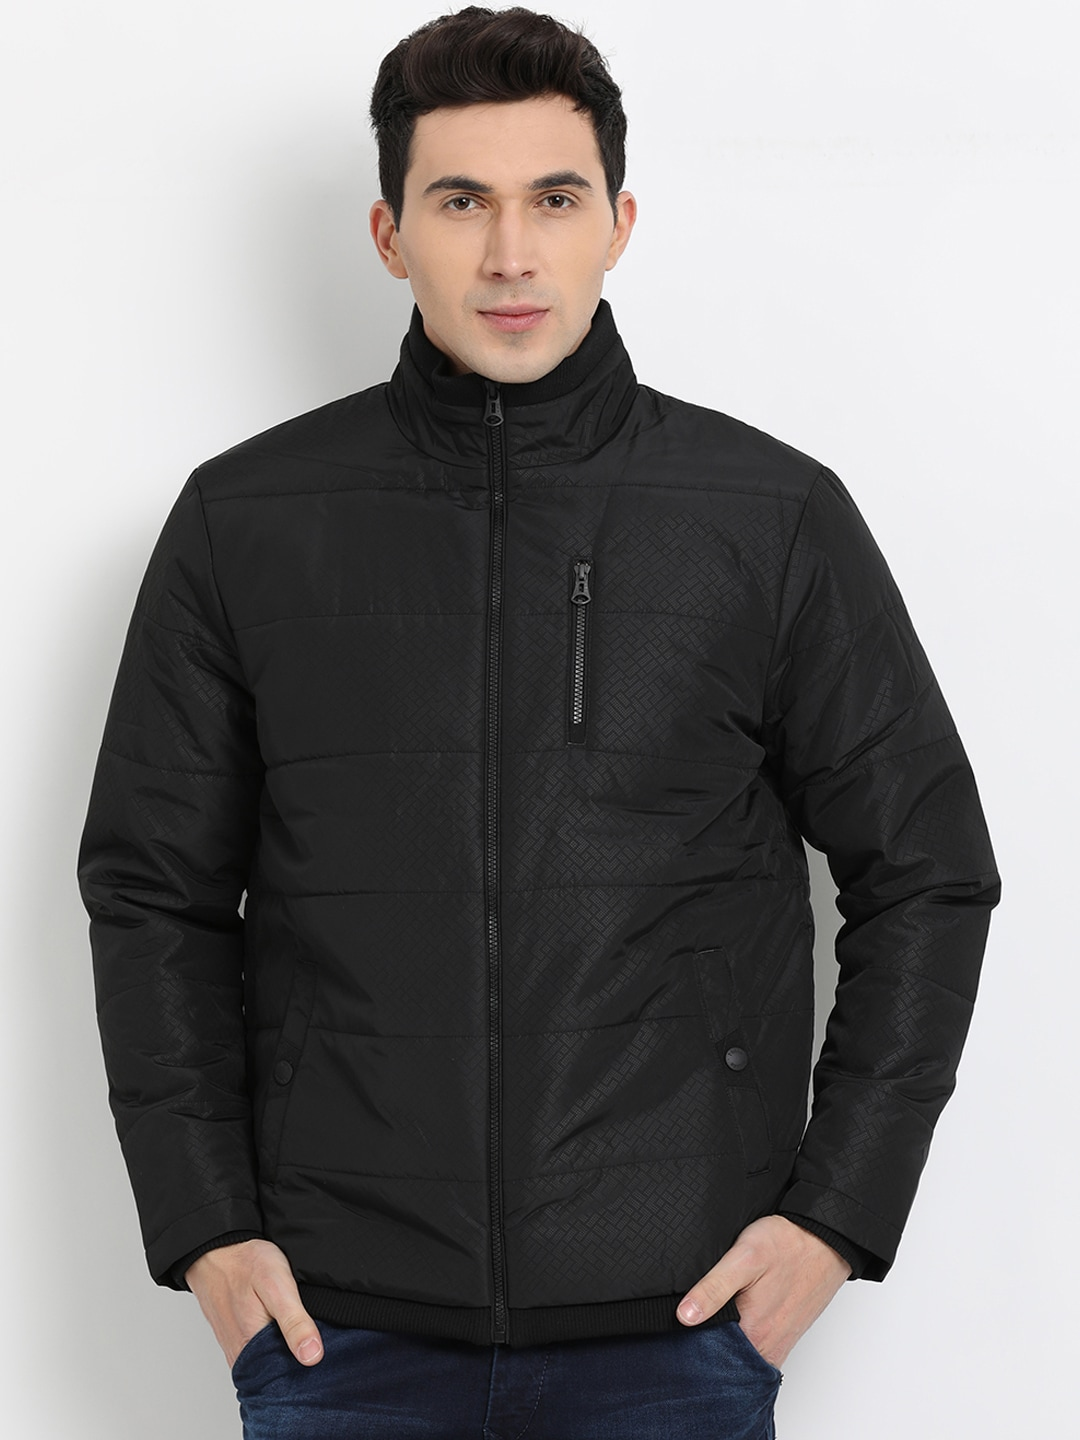 46d5f6a25750 T Base Jackets - Buy T Base Jacket at Best Price Online